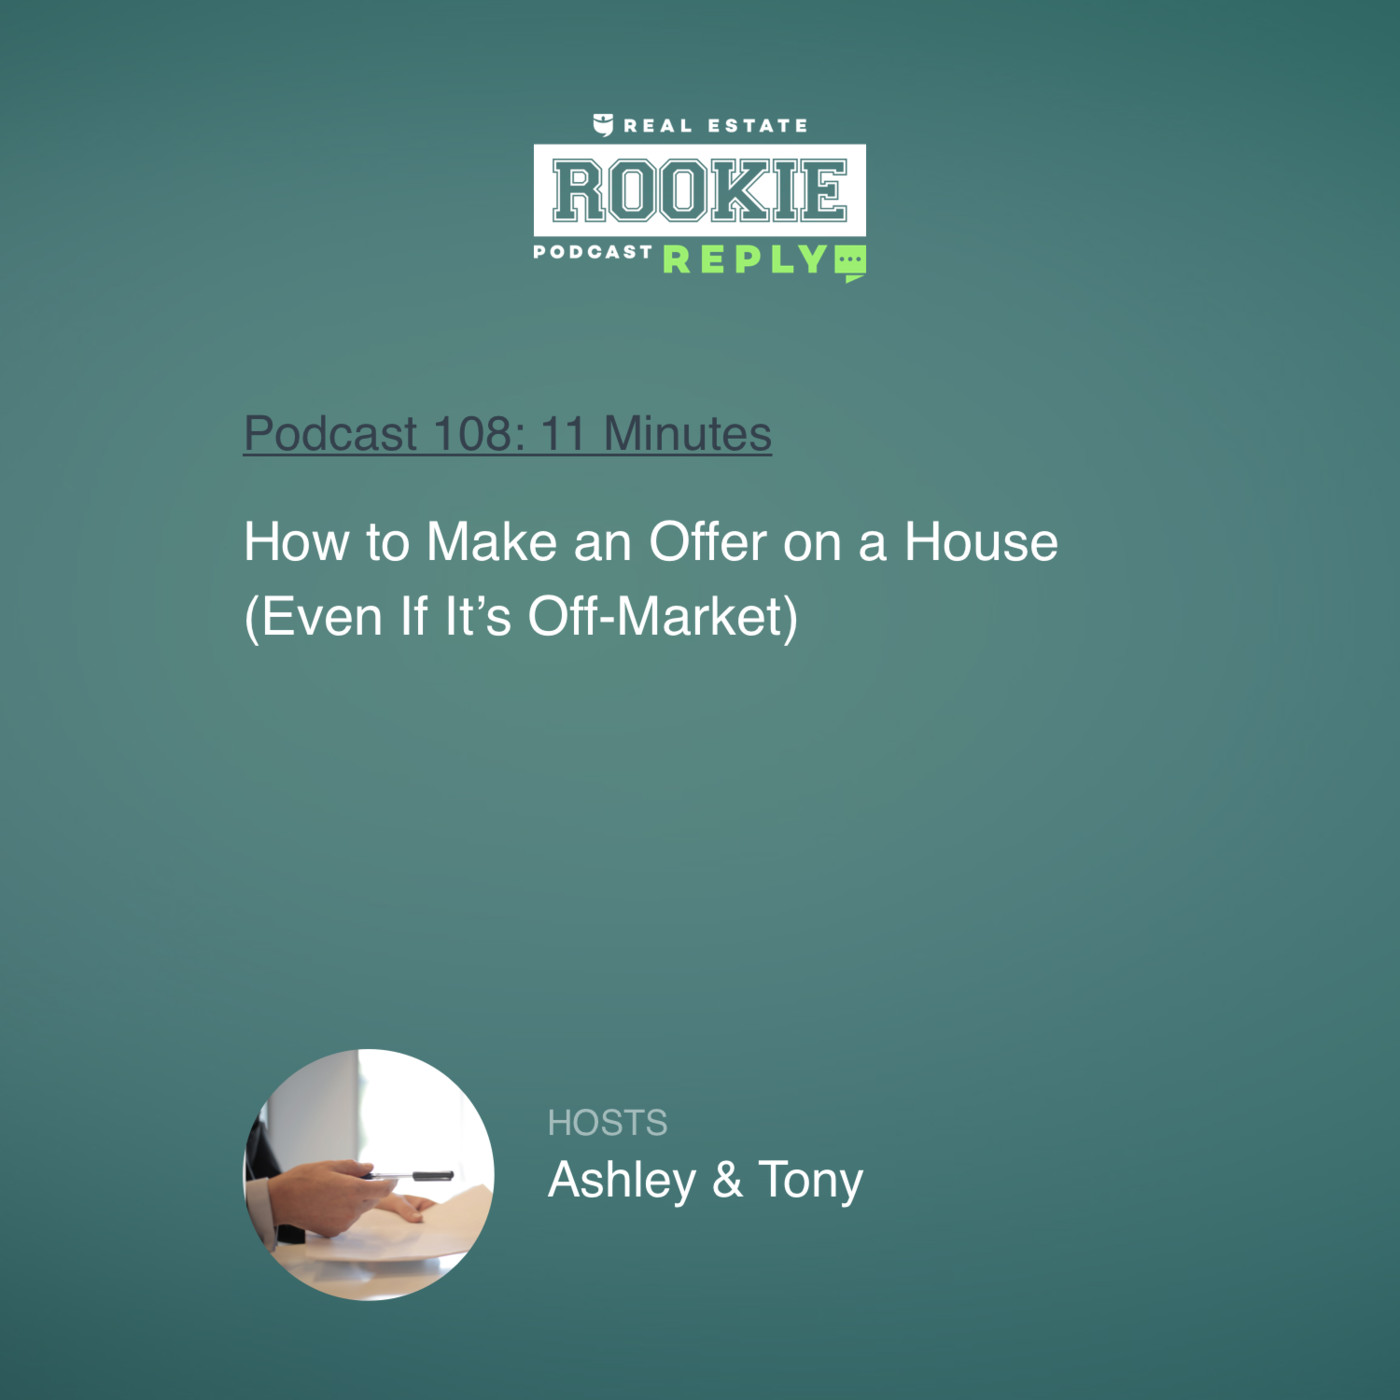 Rookie Reply: How to Make an Offer on a House (Even If It's Off-Market)